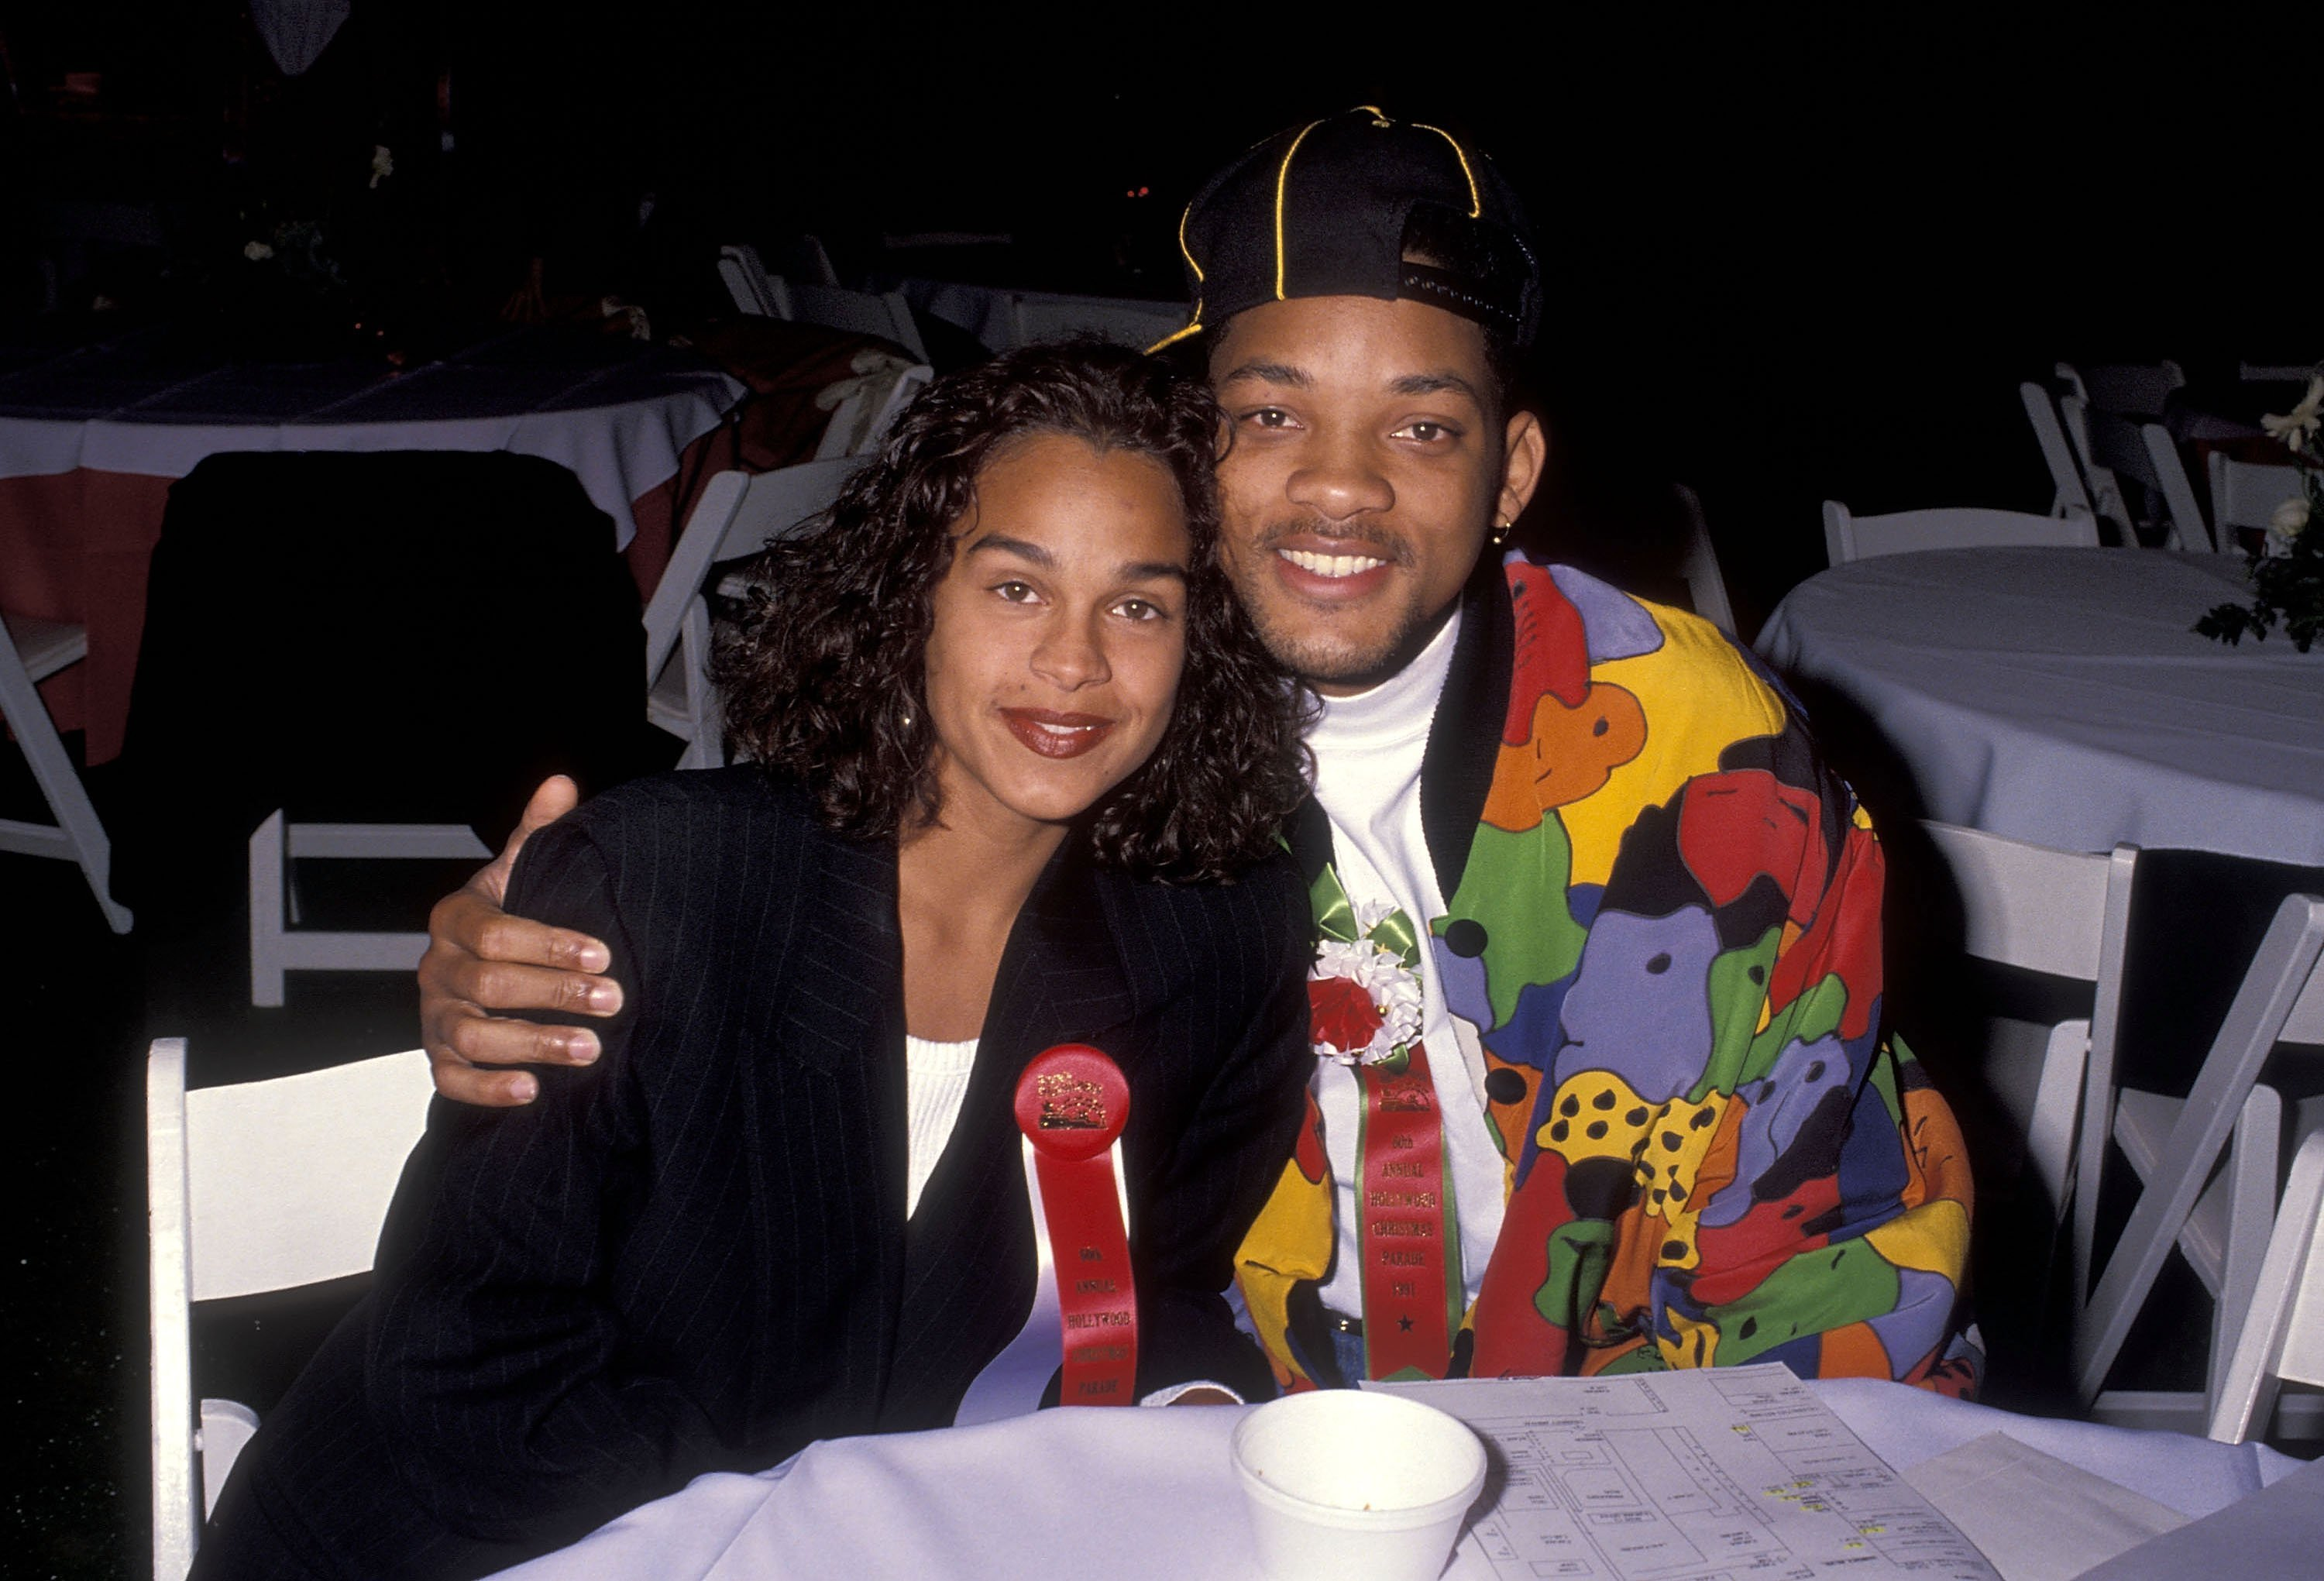 Will Smith and Sheree Zampino on December 1, 1991. | Photo: Getty Images